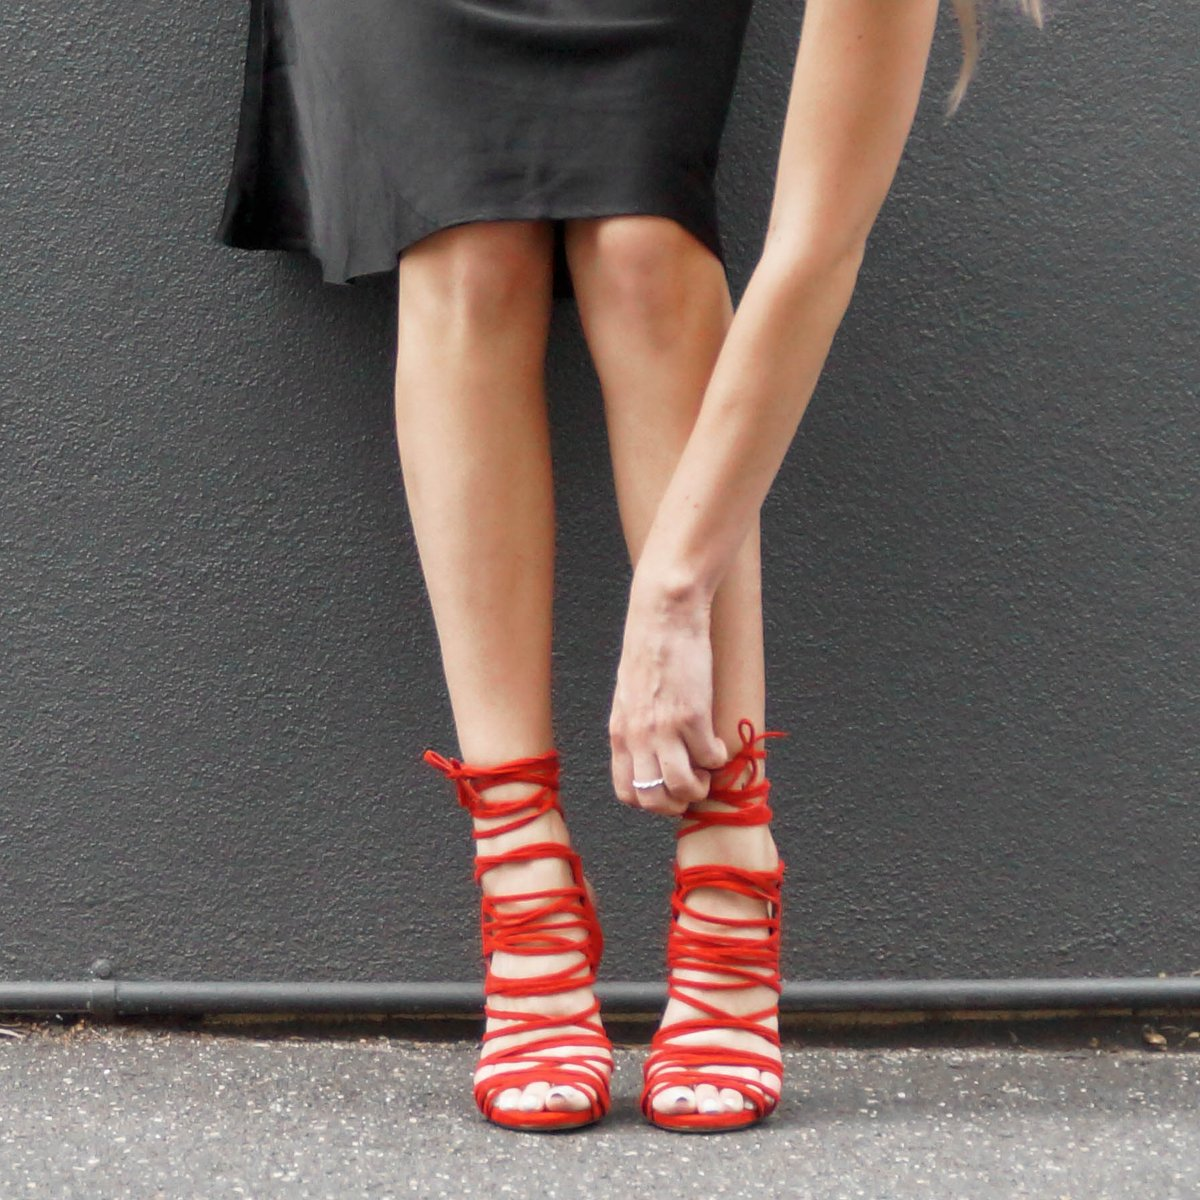 Red HOT #PreOrder 'AVAR' in Red Kid Suede  Get your little tootsies into these bad boys! #Love http://t.co/vq0bO4MWtg